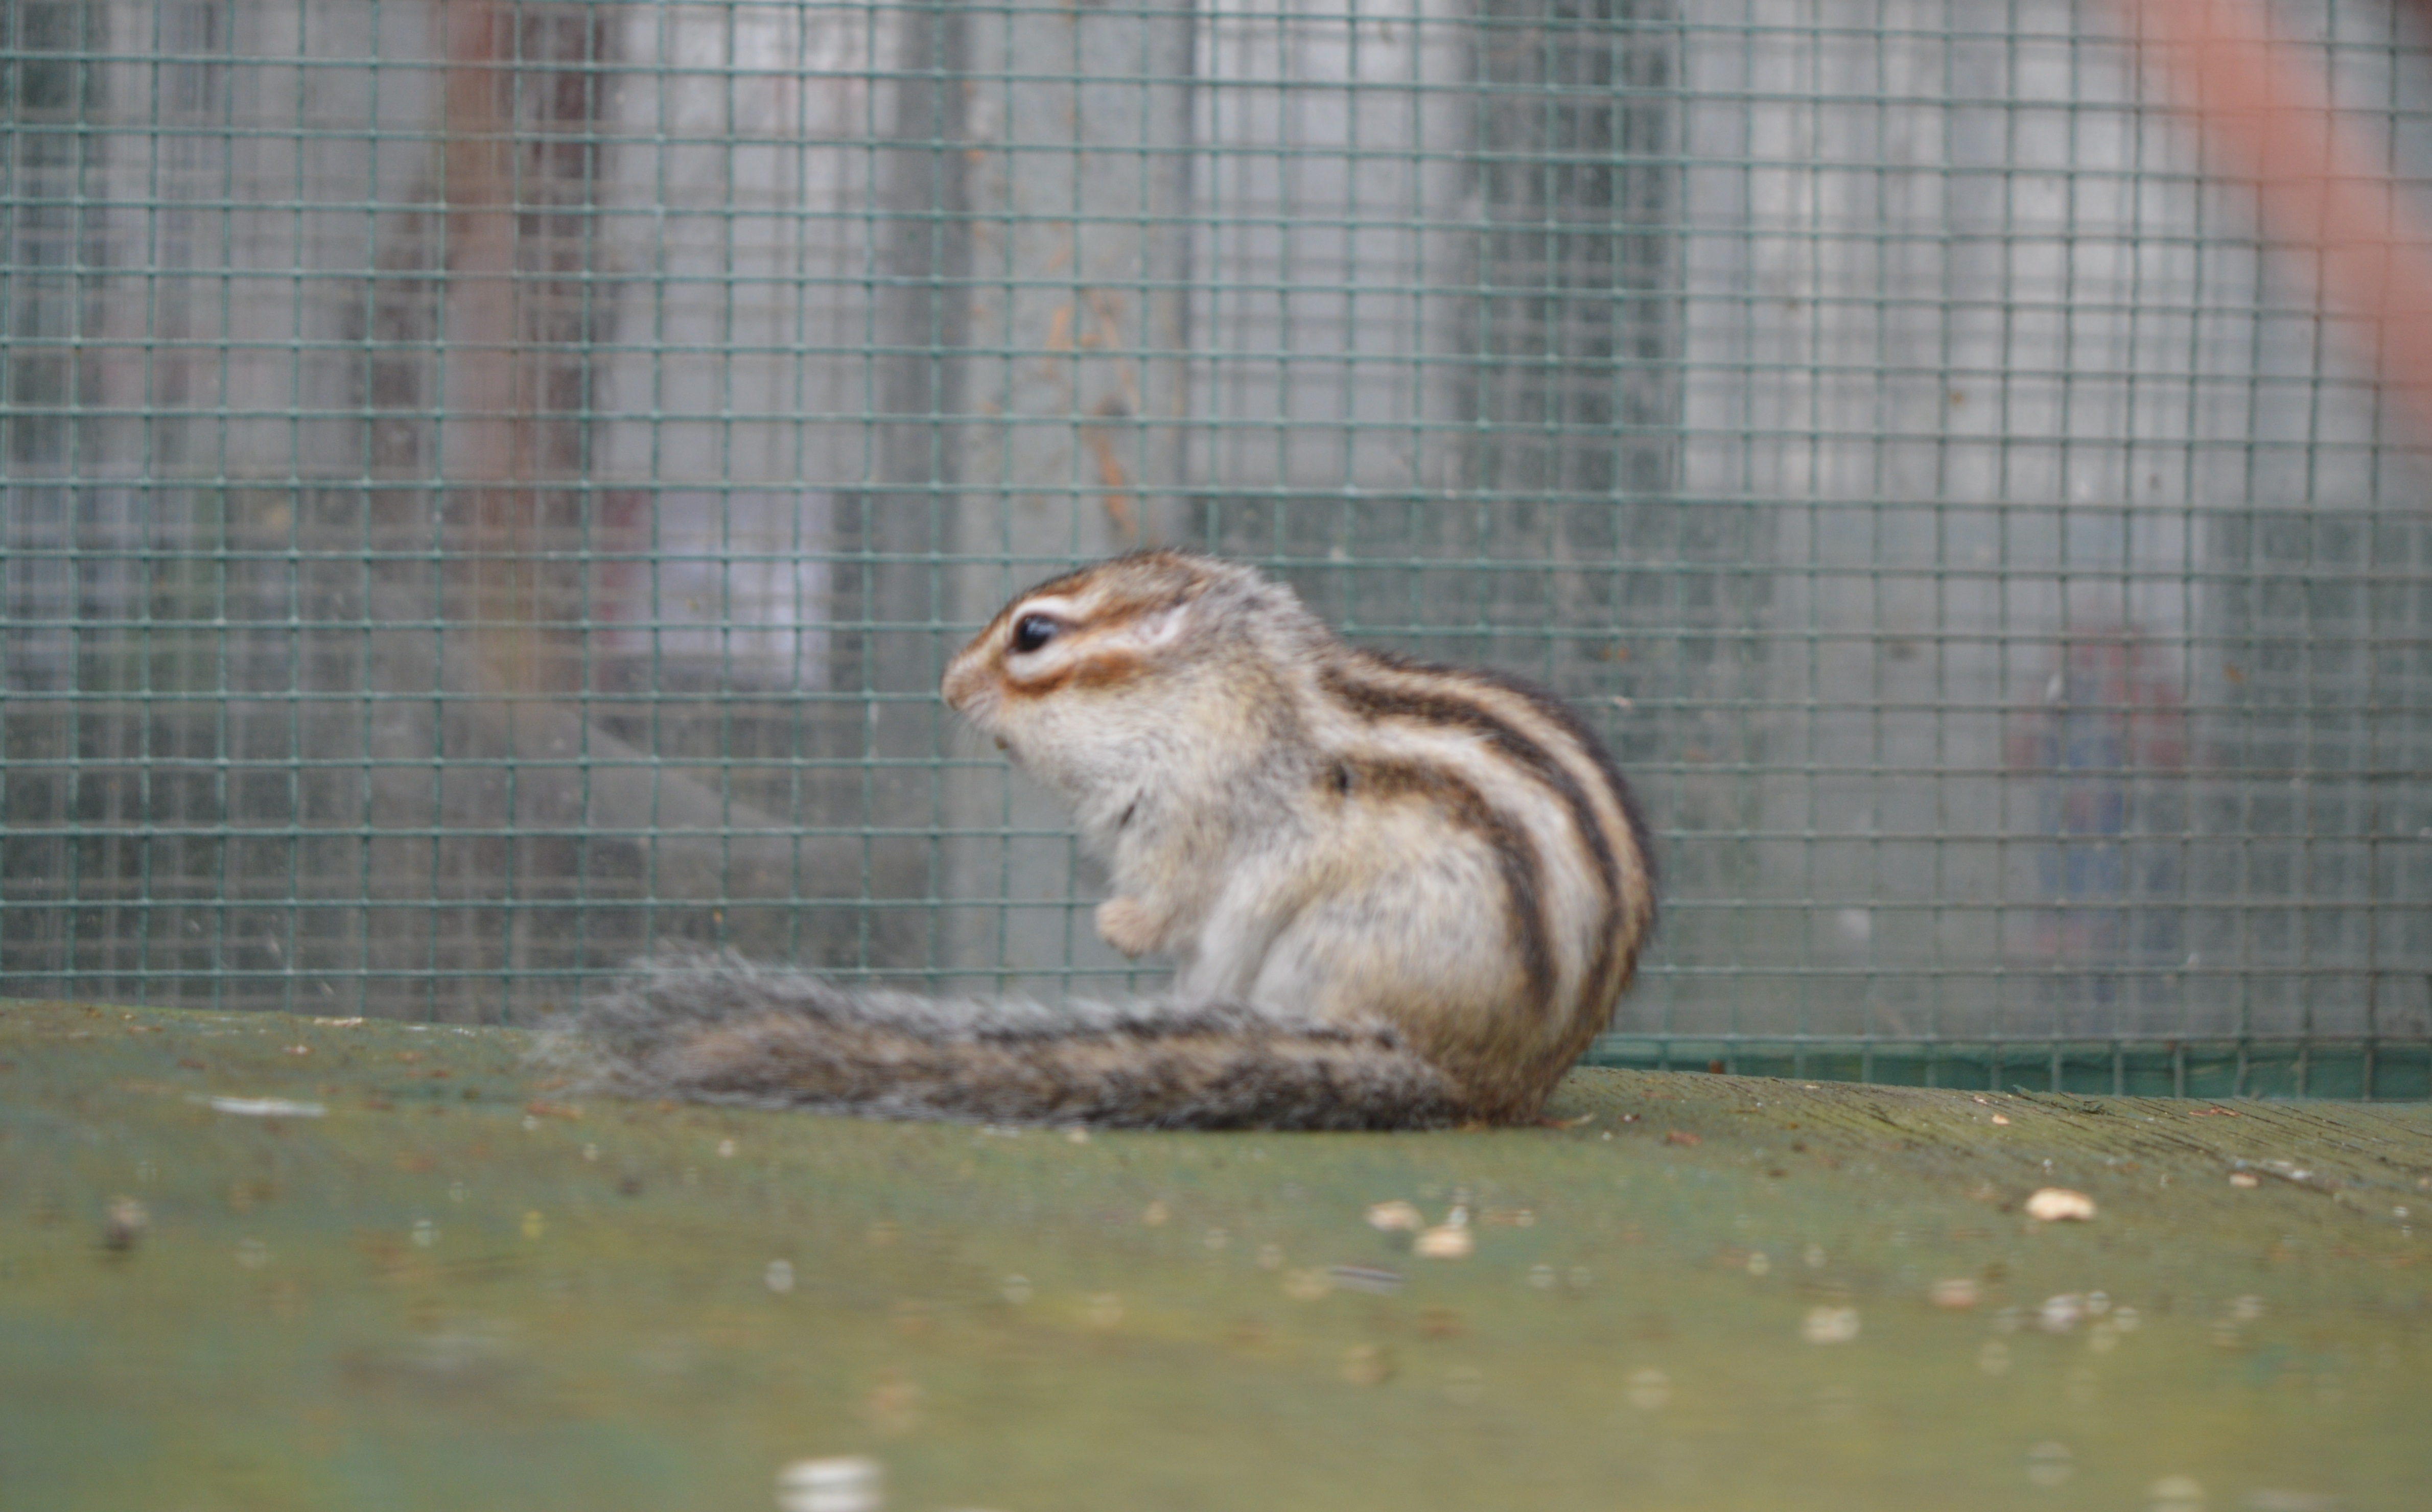 Chipmunk at Alcorn's Tropical World in Letterkenny, Donegal